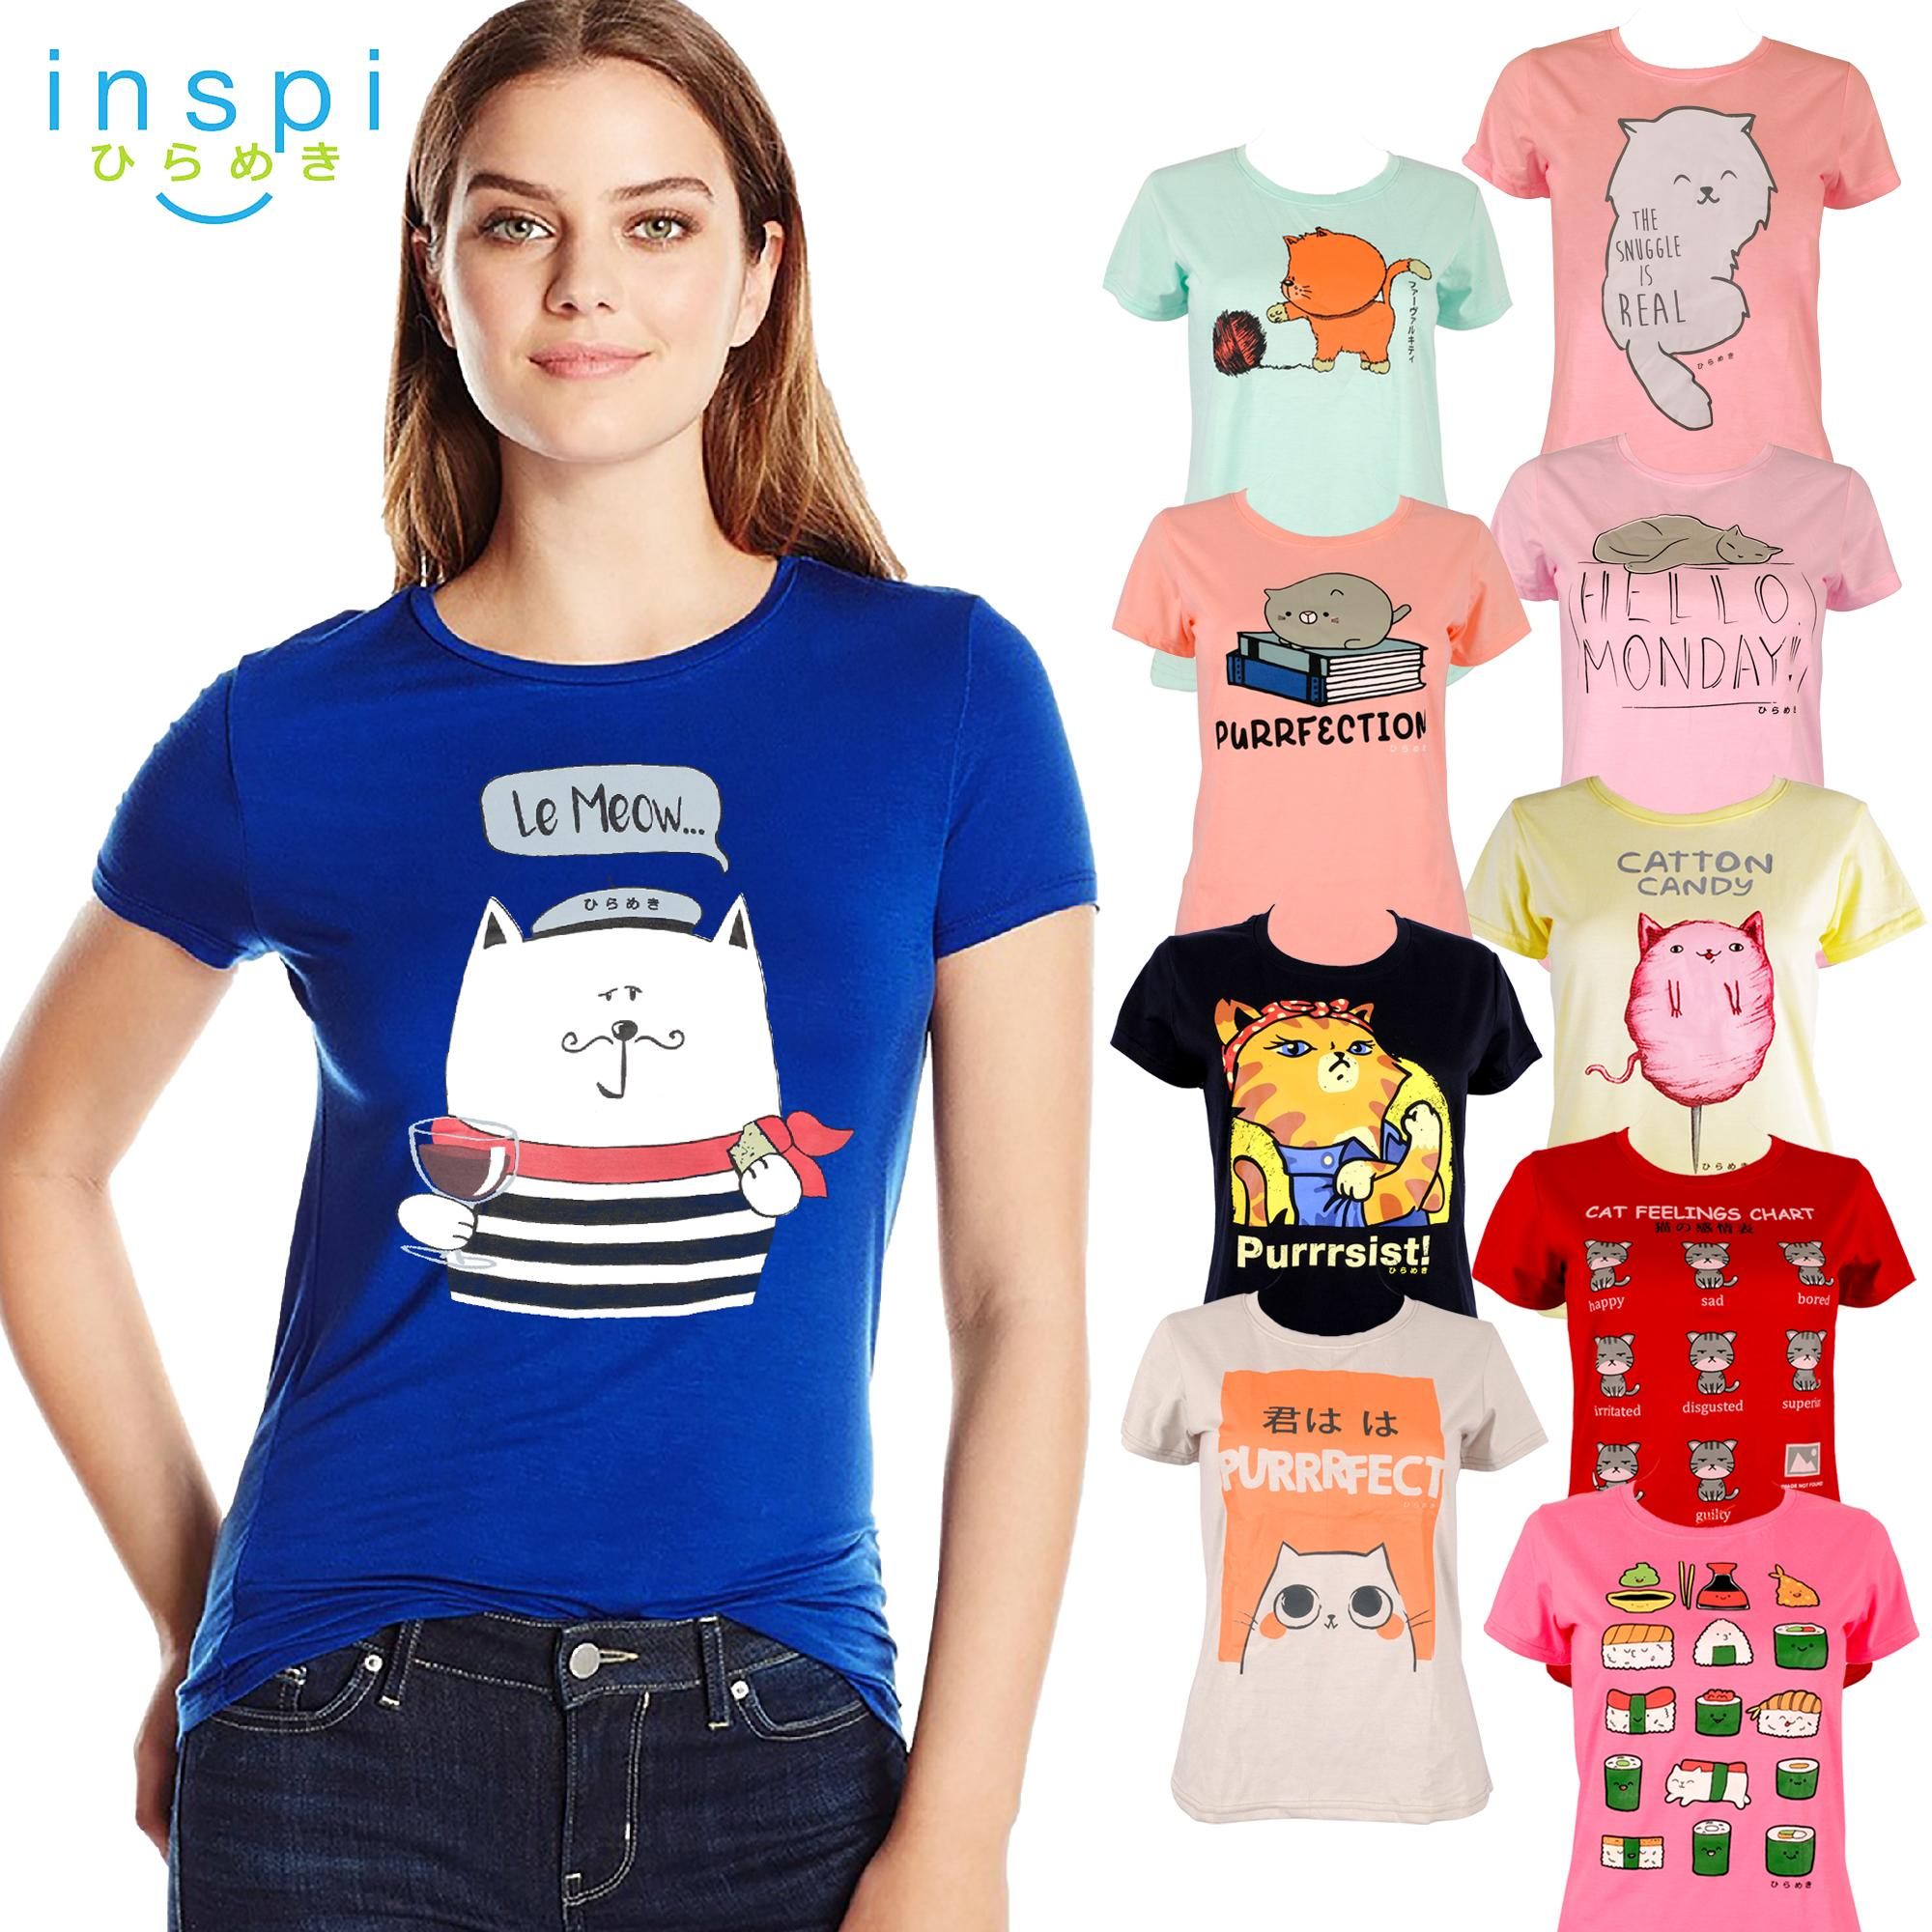 6c371e83213 INSPI Tees Ladies Neko Collection tshirt printed graphic tee Ladies t shirt  shirts women tshirts for